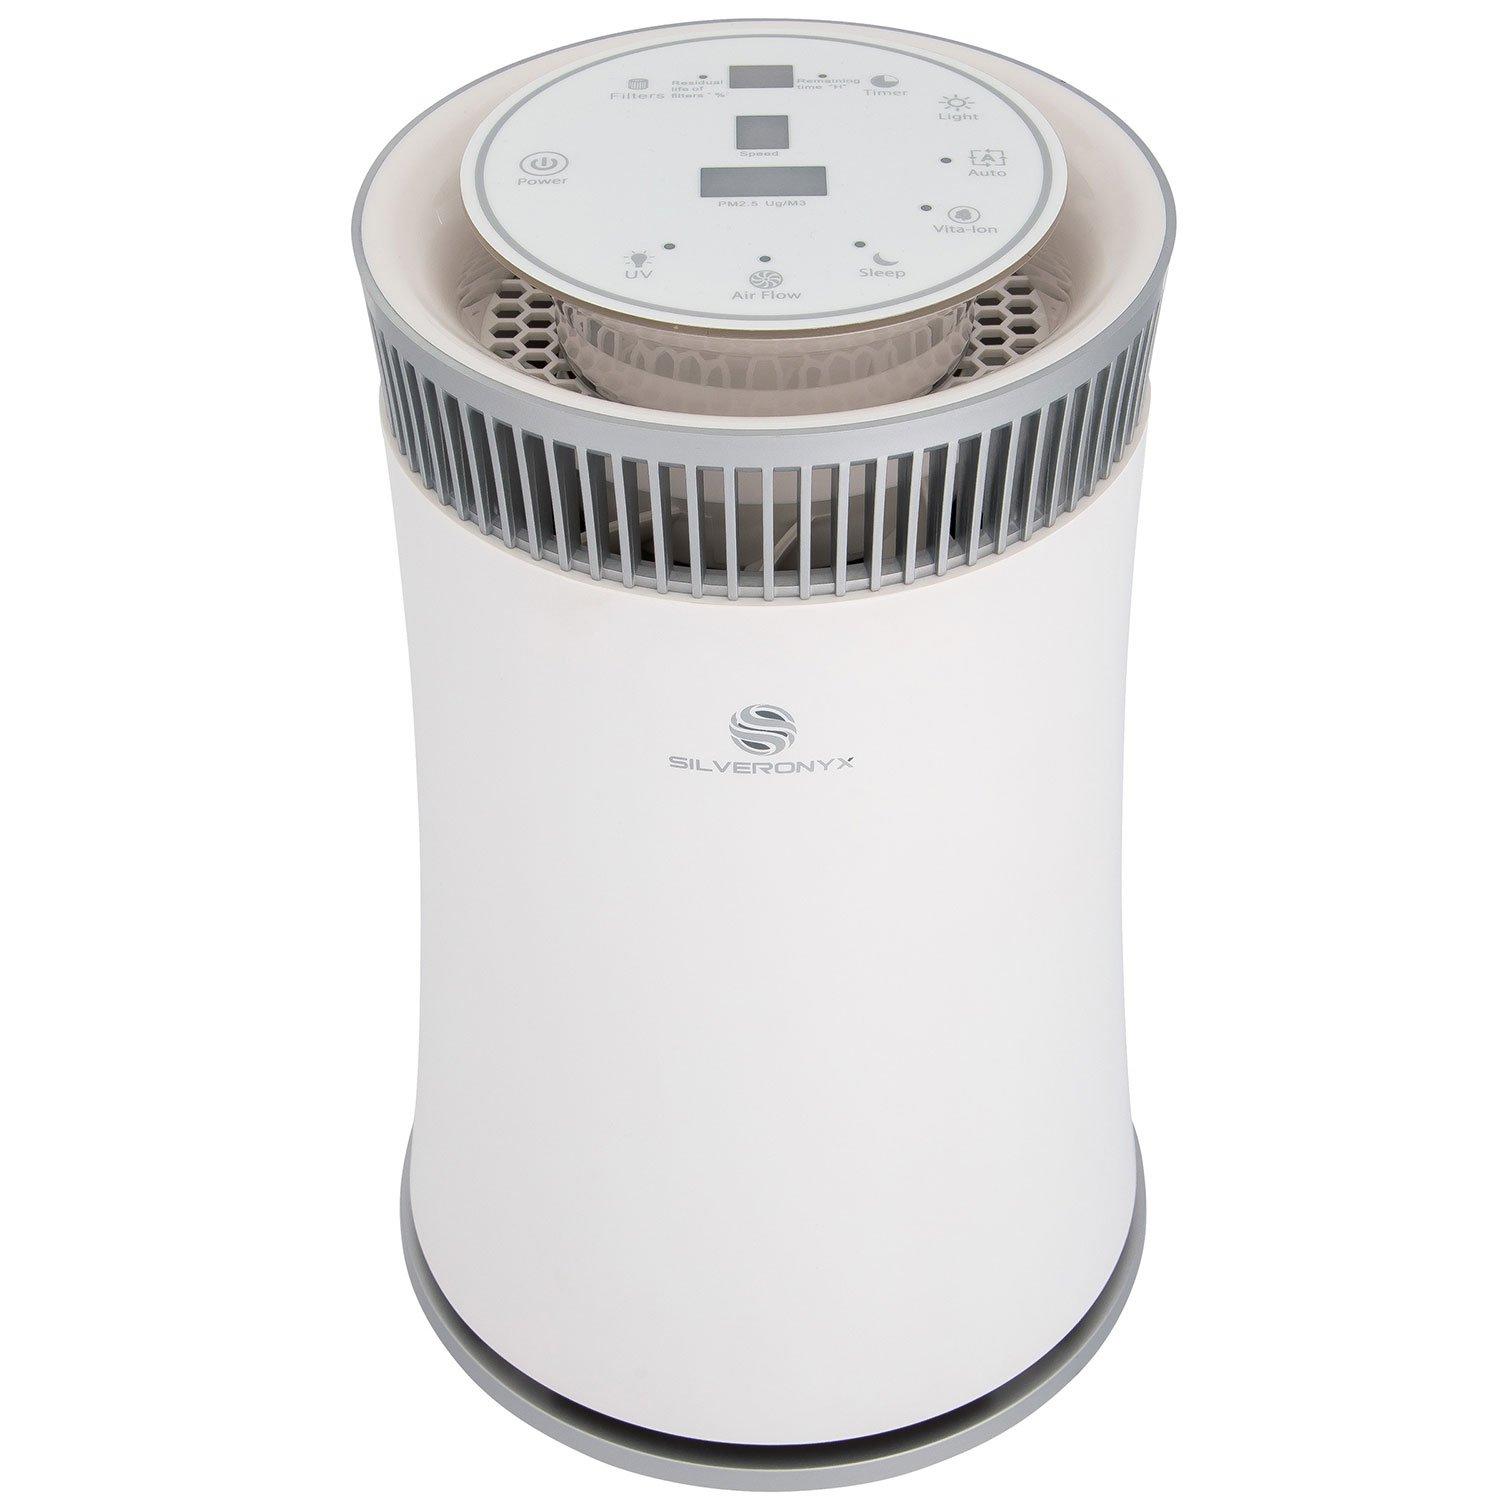 SilverOnyx Air Purifier with True HEPA Carbon Filter, UV Light, Ionizer. Best Home Air Cleaner for Allergies and Pets, Smoke, Dust, Mold, Smokers. Powerful Small to Large Room 500 sq ft. White by SilverOnyx